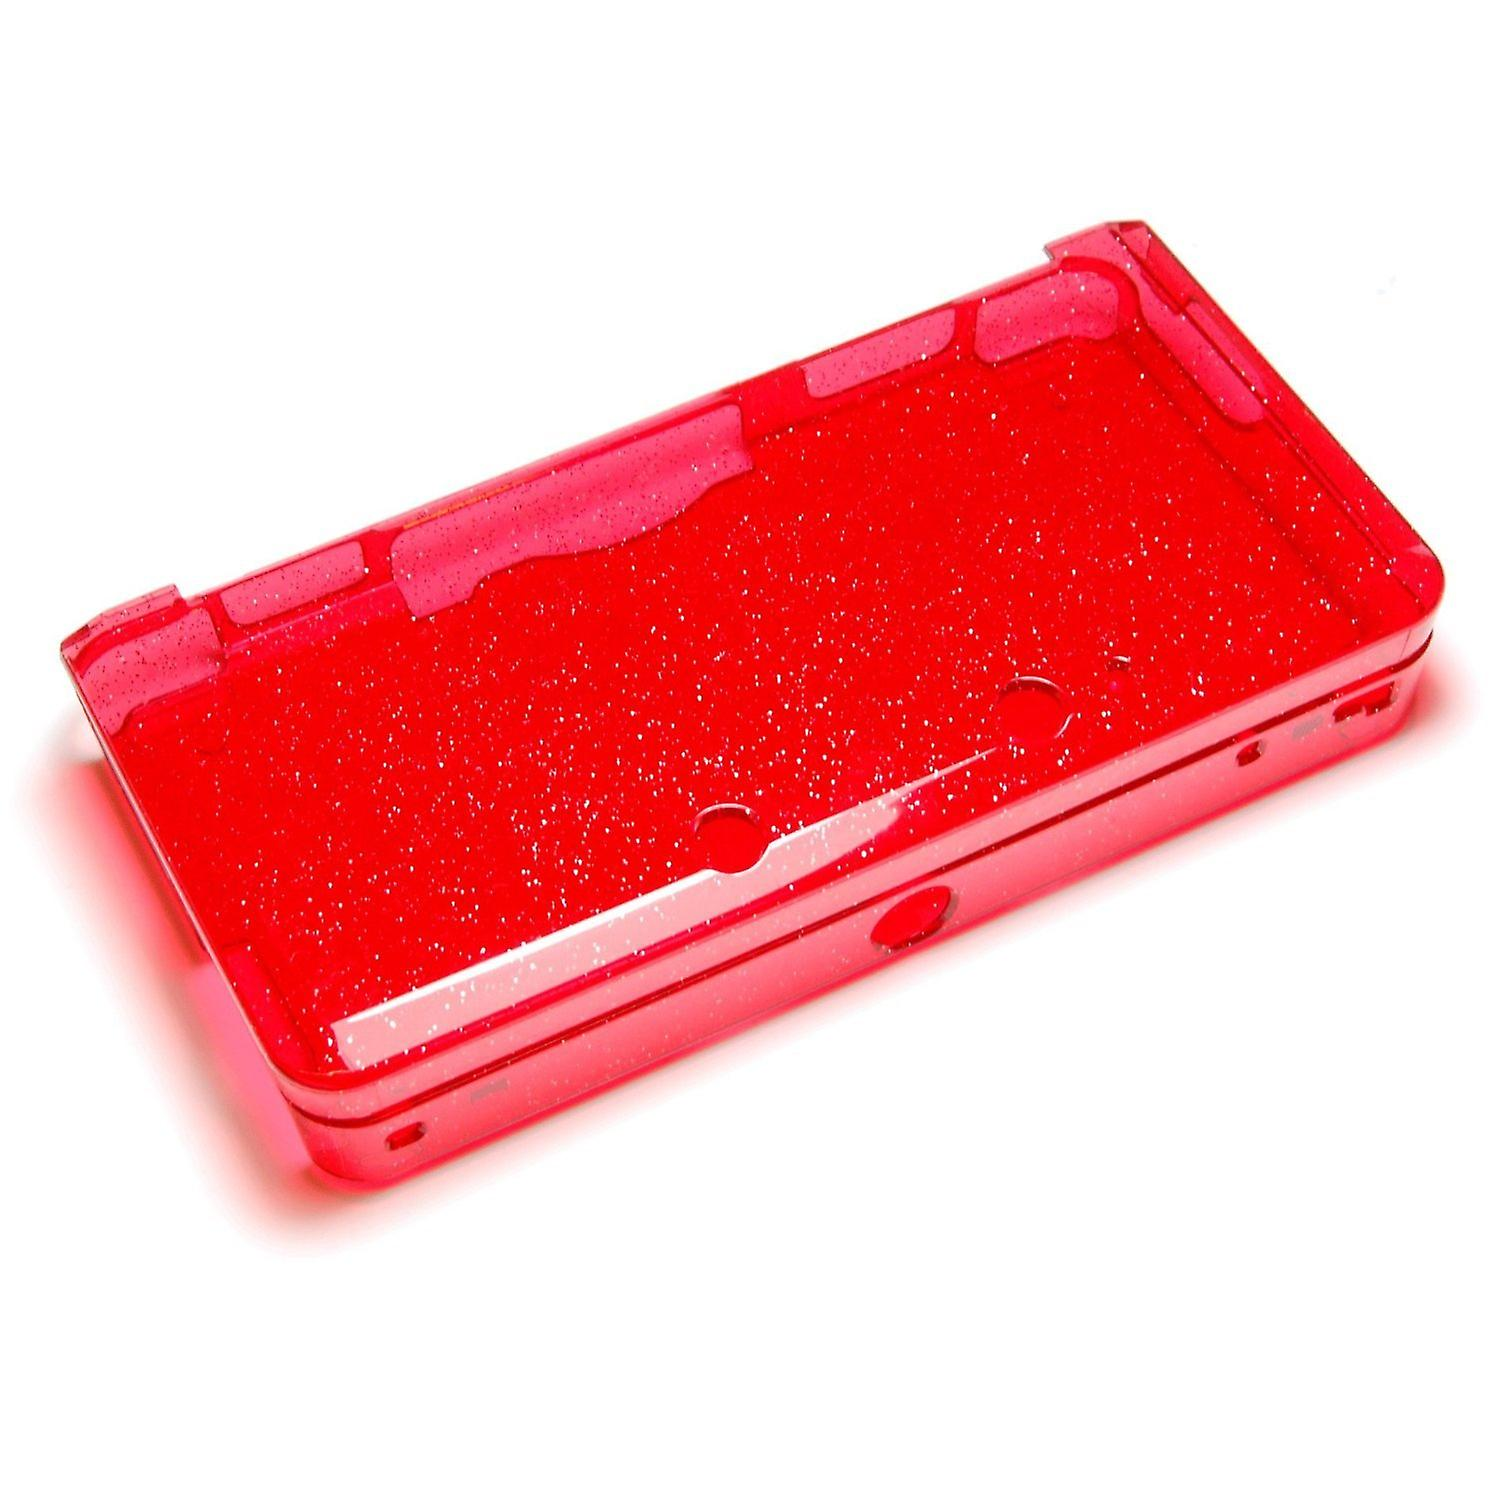 Glitter crystal case for nintendo 3ds (old 2012 model) - protective hard armor cover shell - red